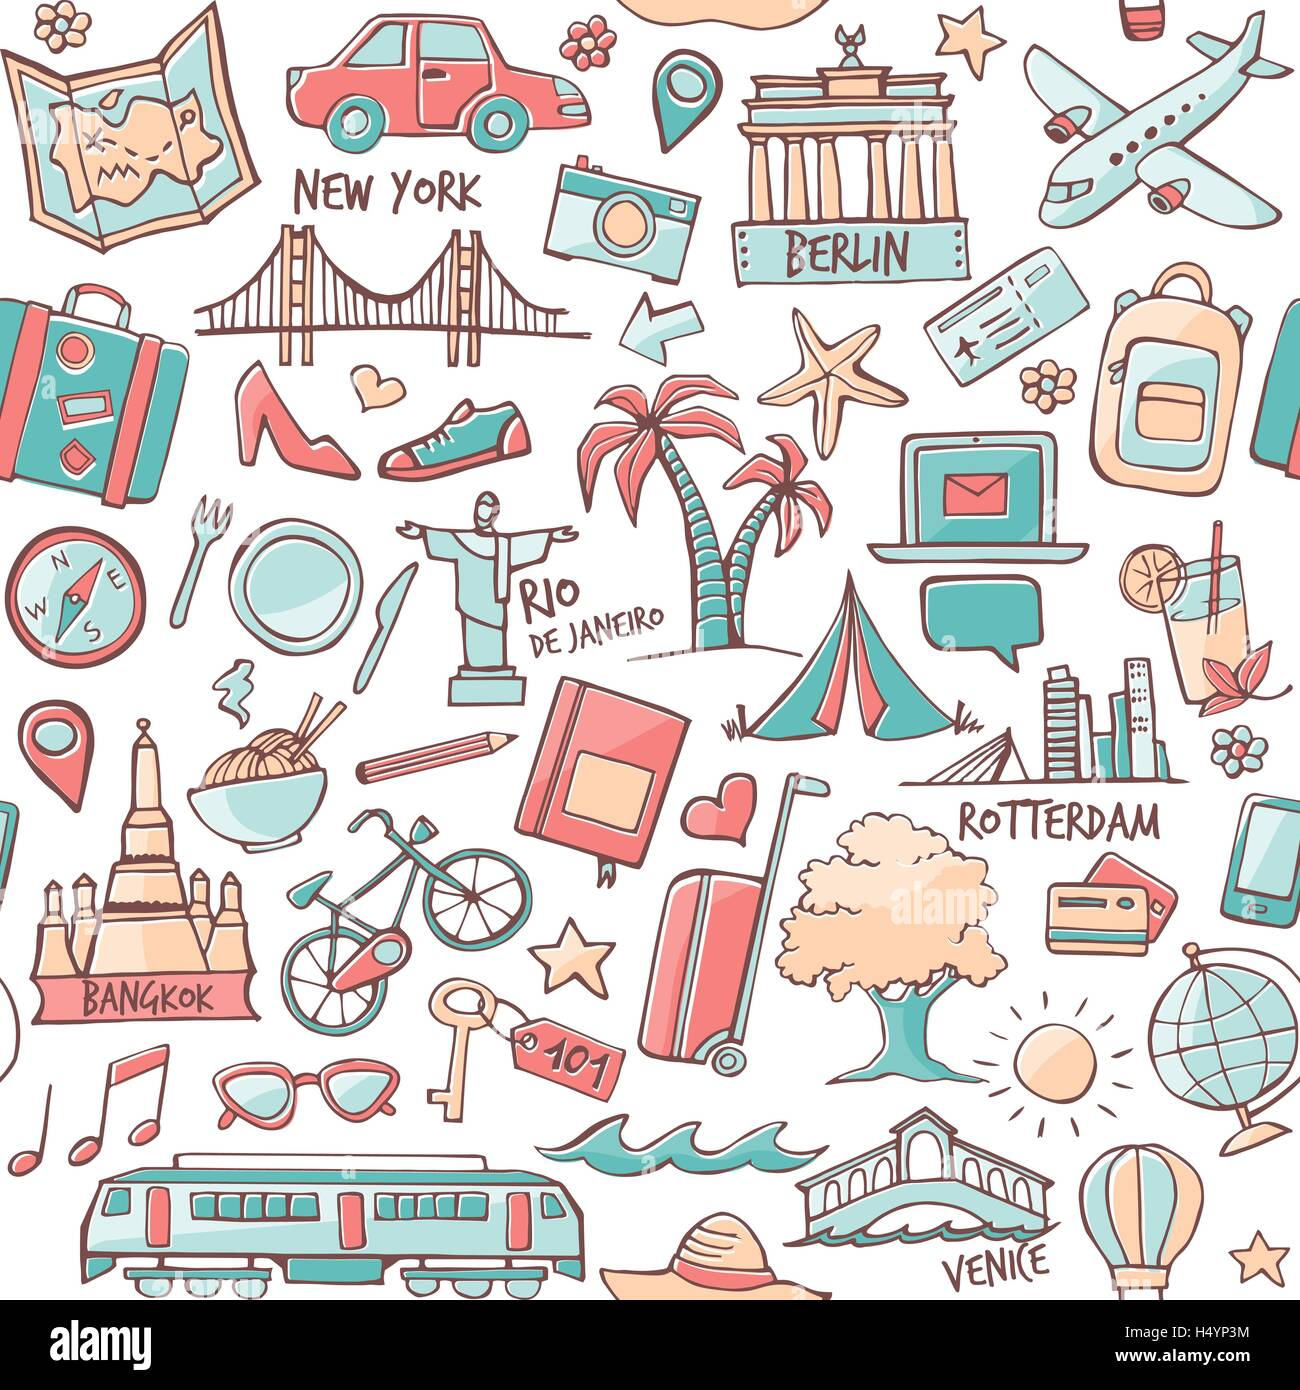 Tourism and travel seamless hand drawn pattern with travel destinations - Stock Vector